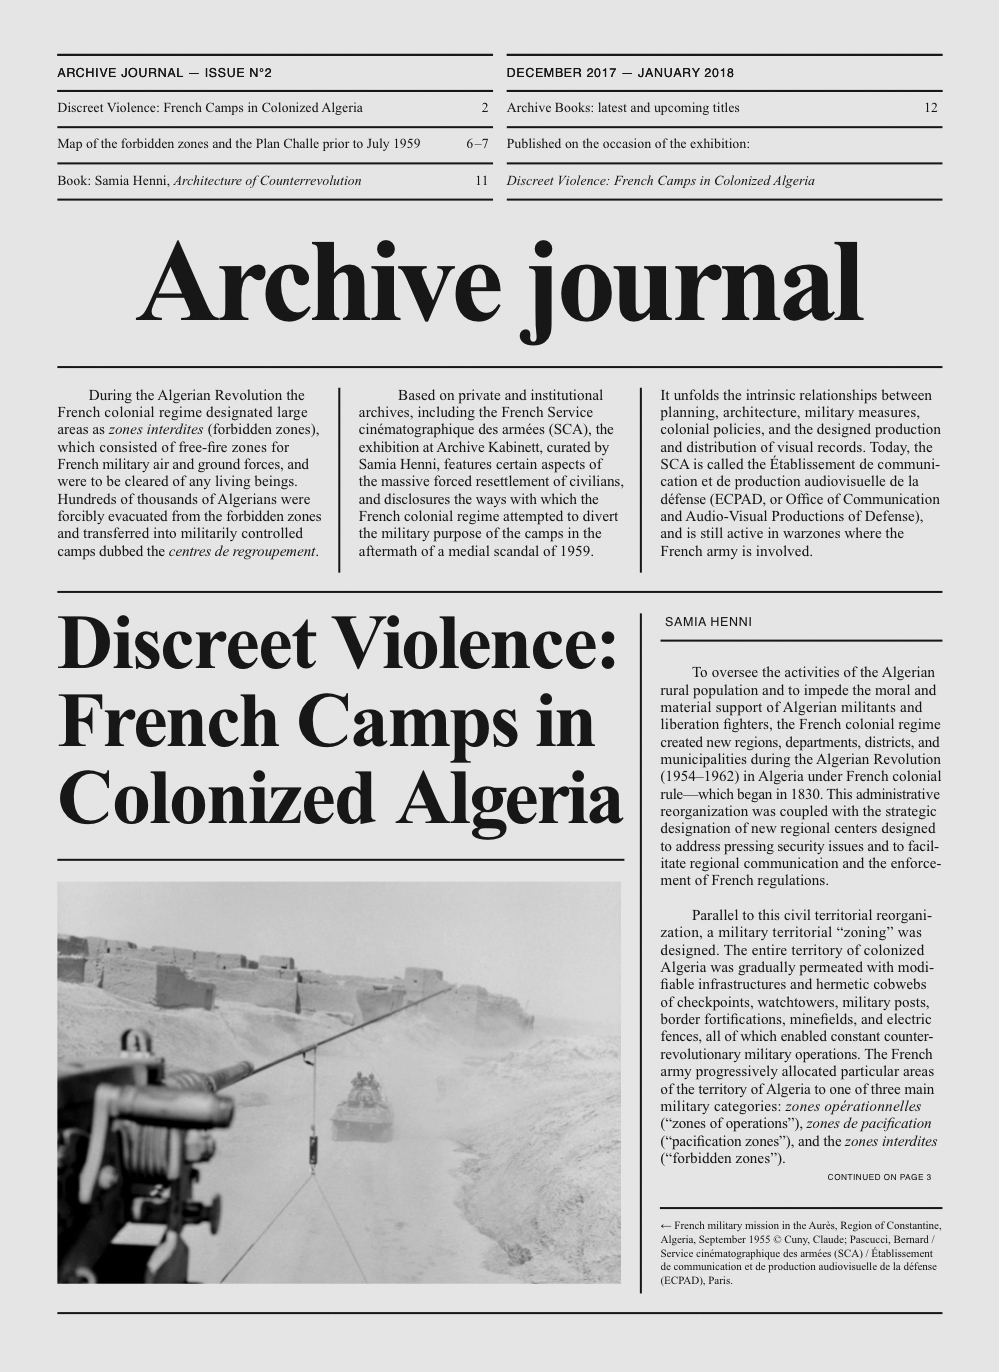 Archive Journal N°2